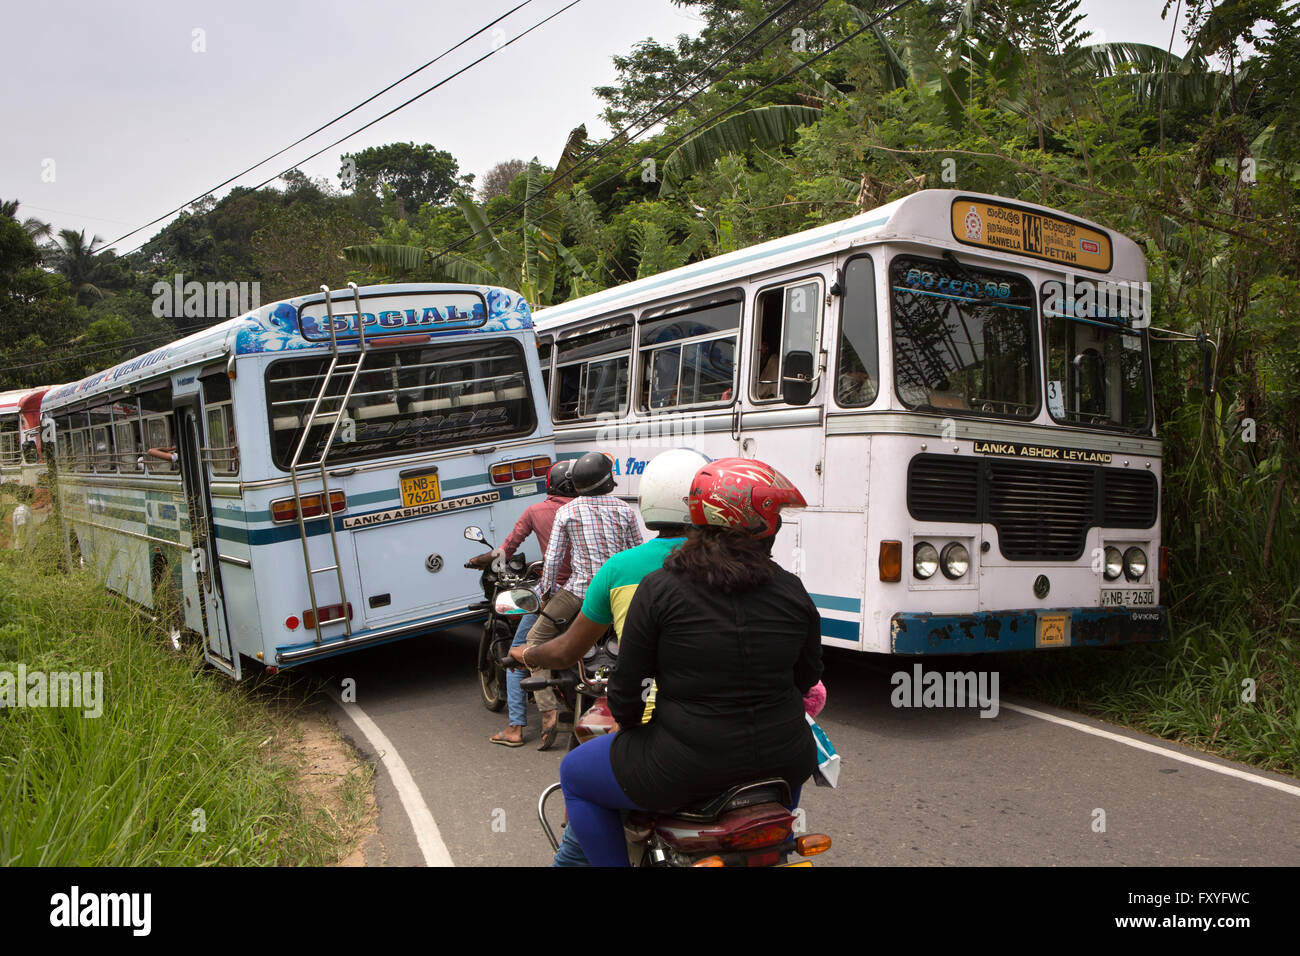 Sri Lanka, Kandy, Embekke, two buses passing with difficulty on single track road - Stock Image